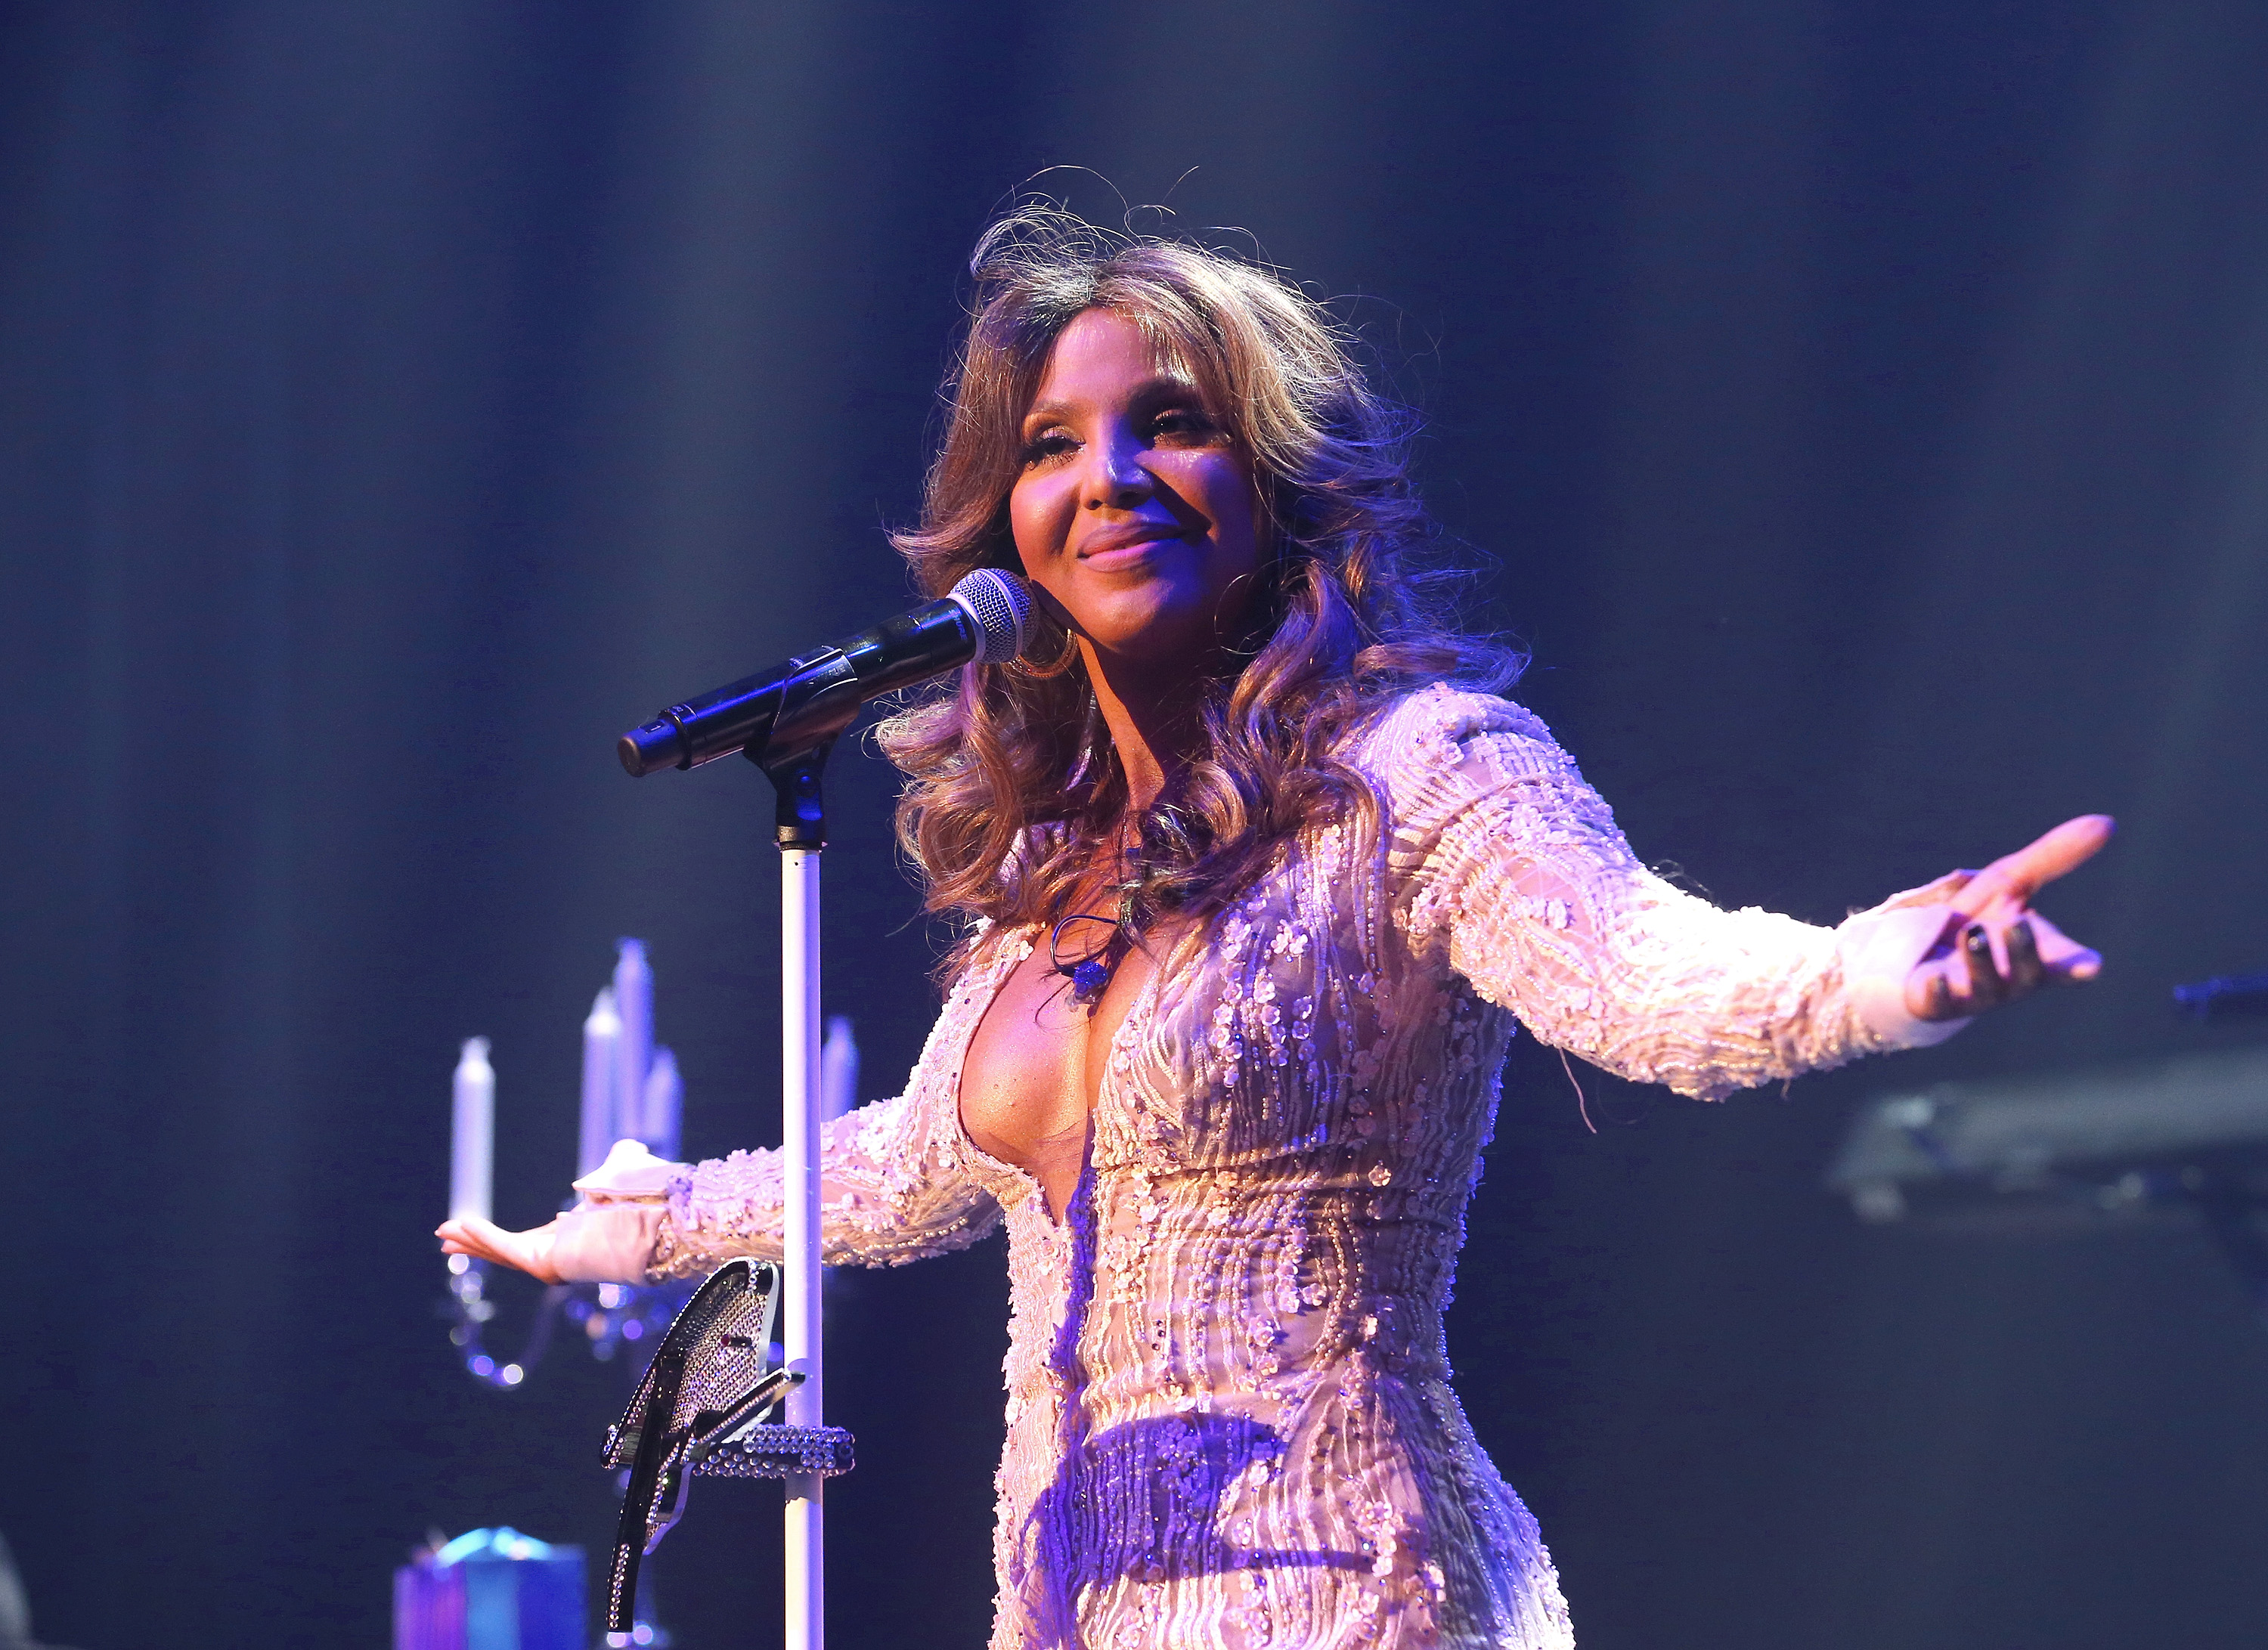 Toni Braxton Pays Homage To Biggie & Lil Kim At GRAMMYPark Brooklyn